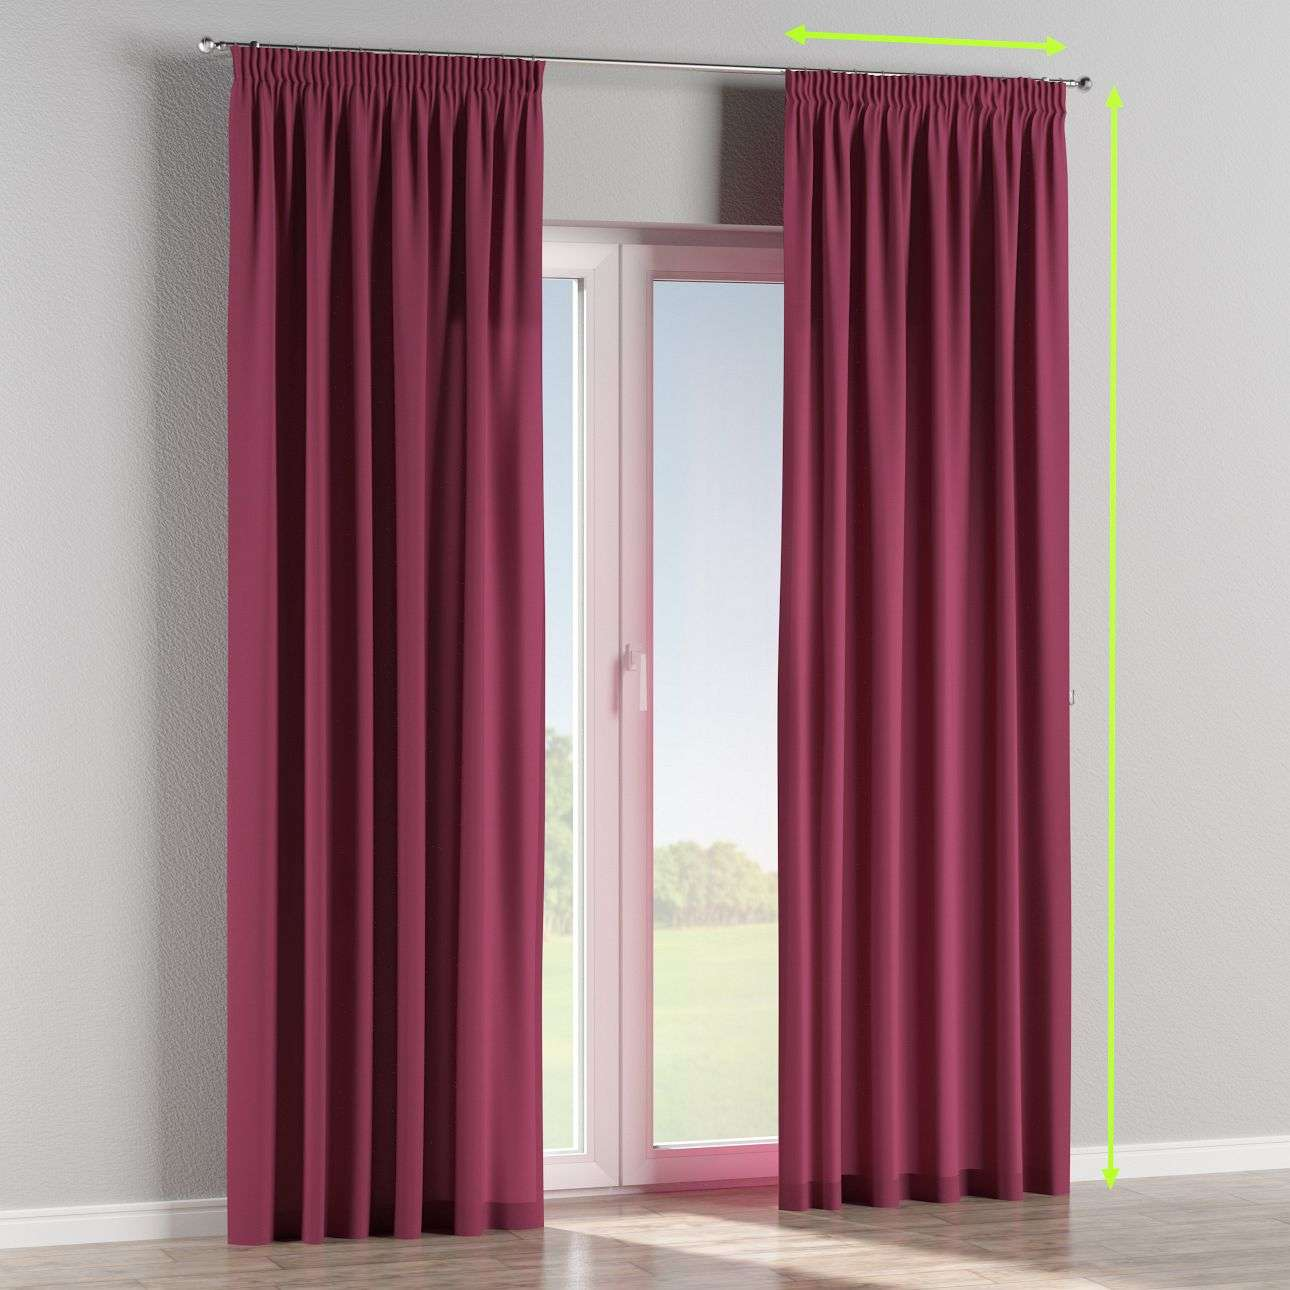 Pencil pleat lined curtains in collection Cotton Panama, fabric: 702-32